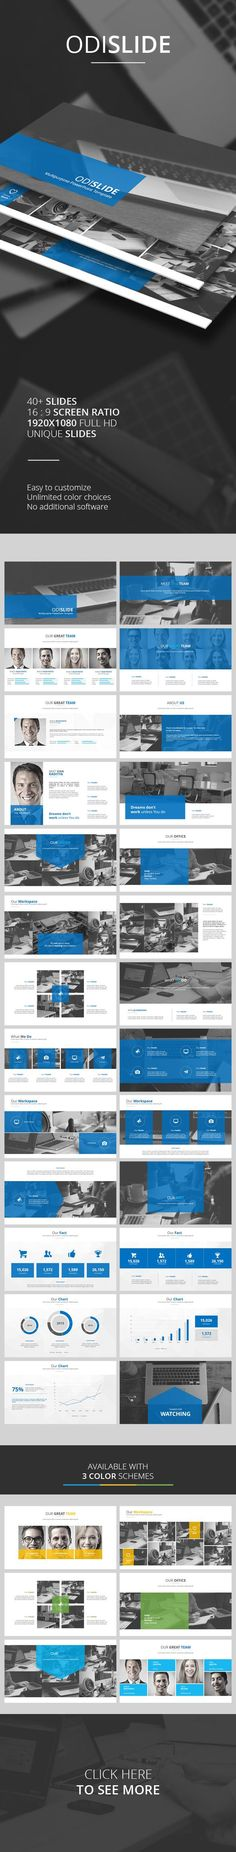 Odislide PowerPoint Template (PowerPoint Templates):